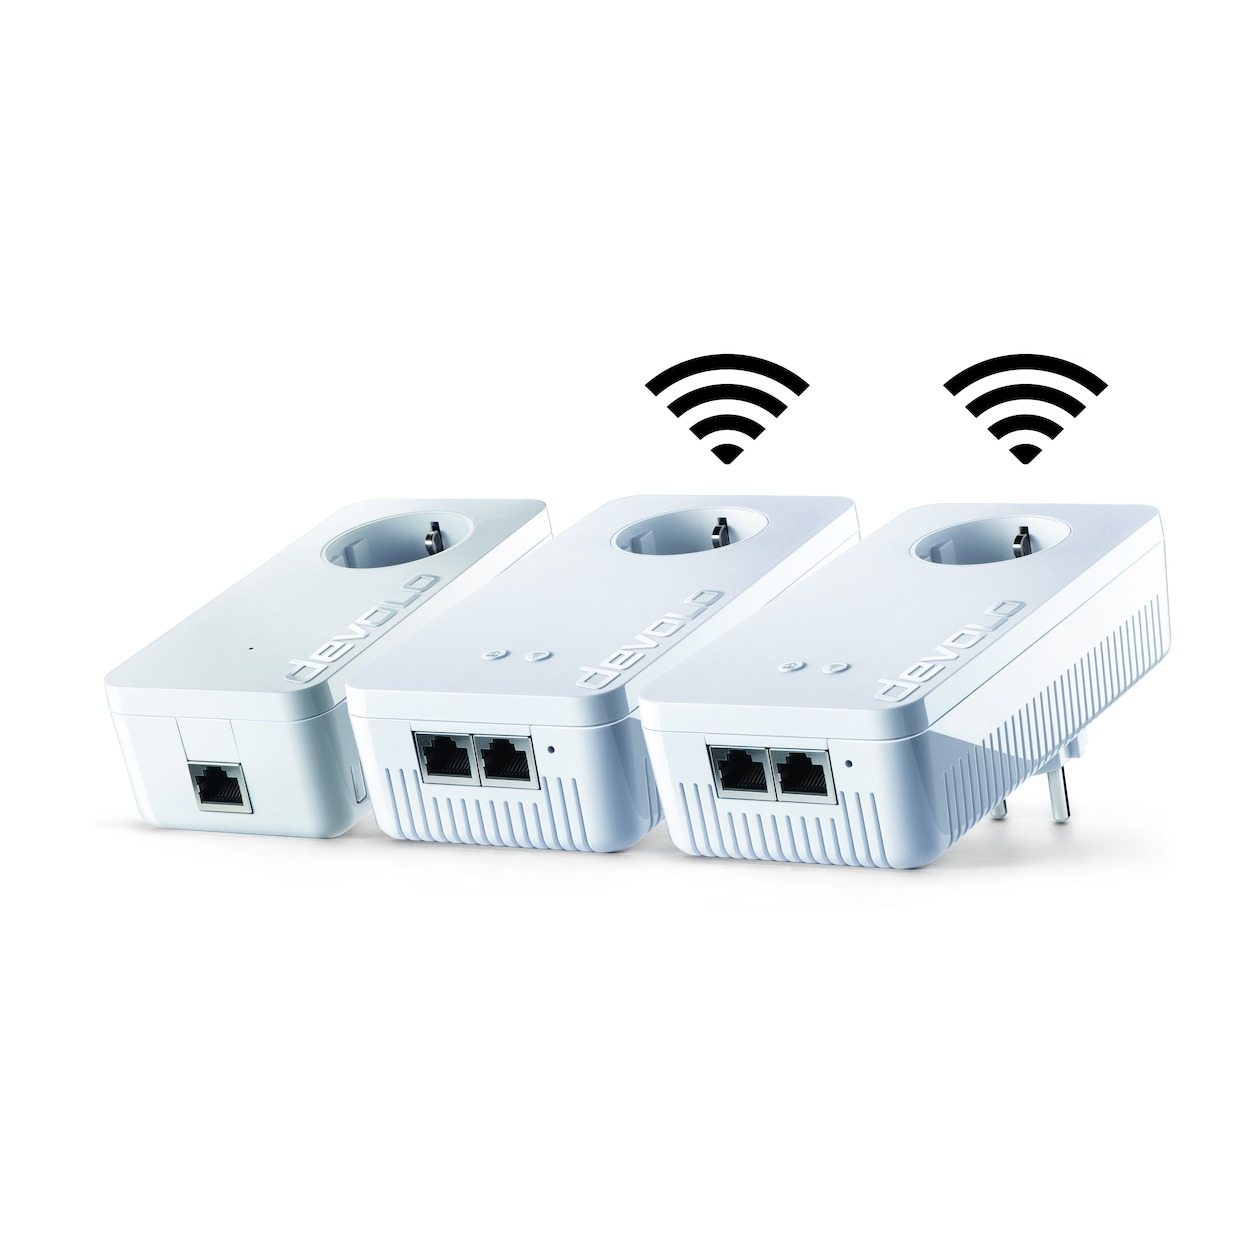 Devolo mesh router 1200+ Multiroom Wifi Kit